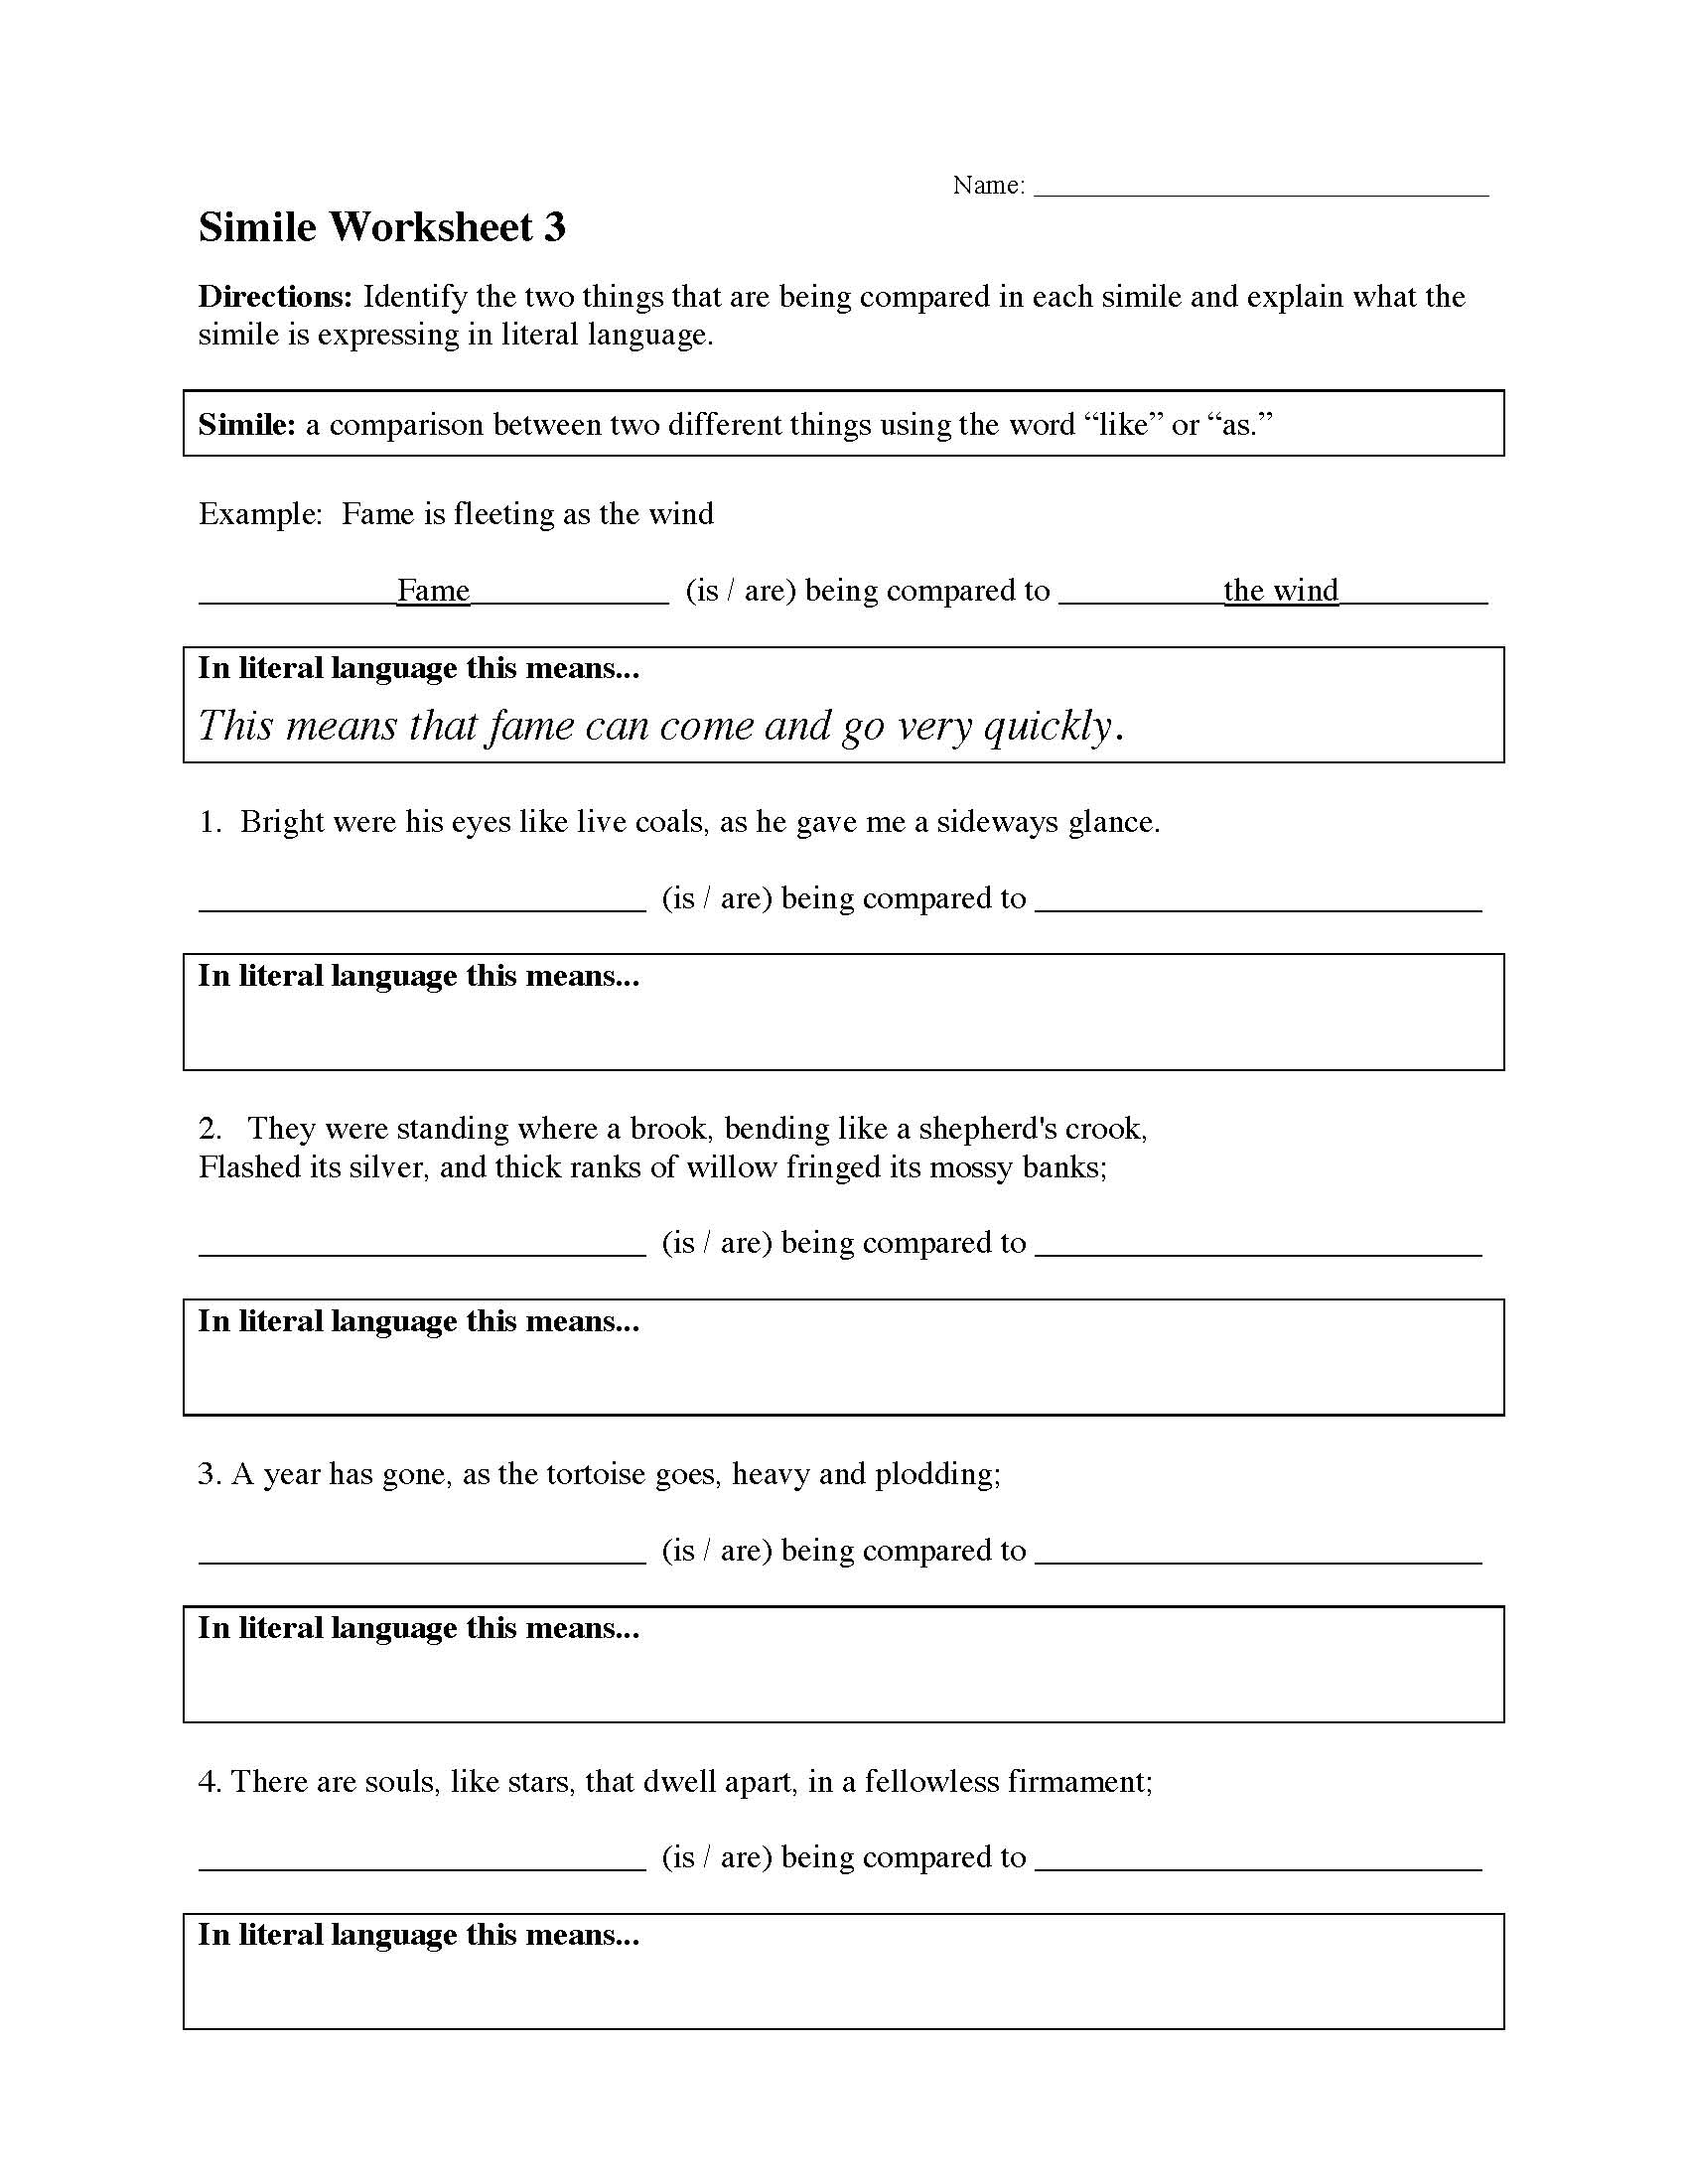 Worksheets Simile Worksheets simile worksheet 3 preview this is a image of the 3